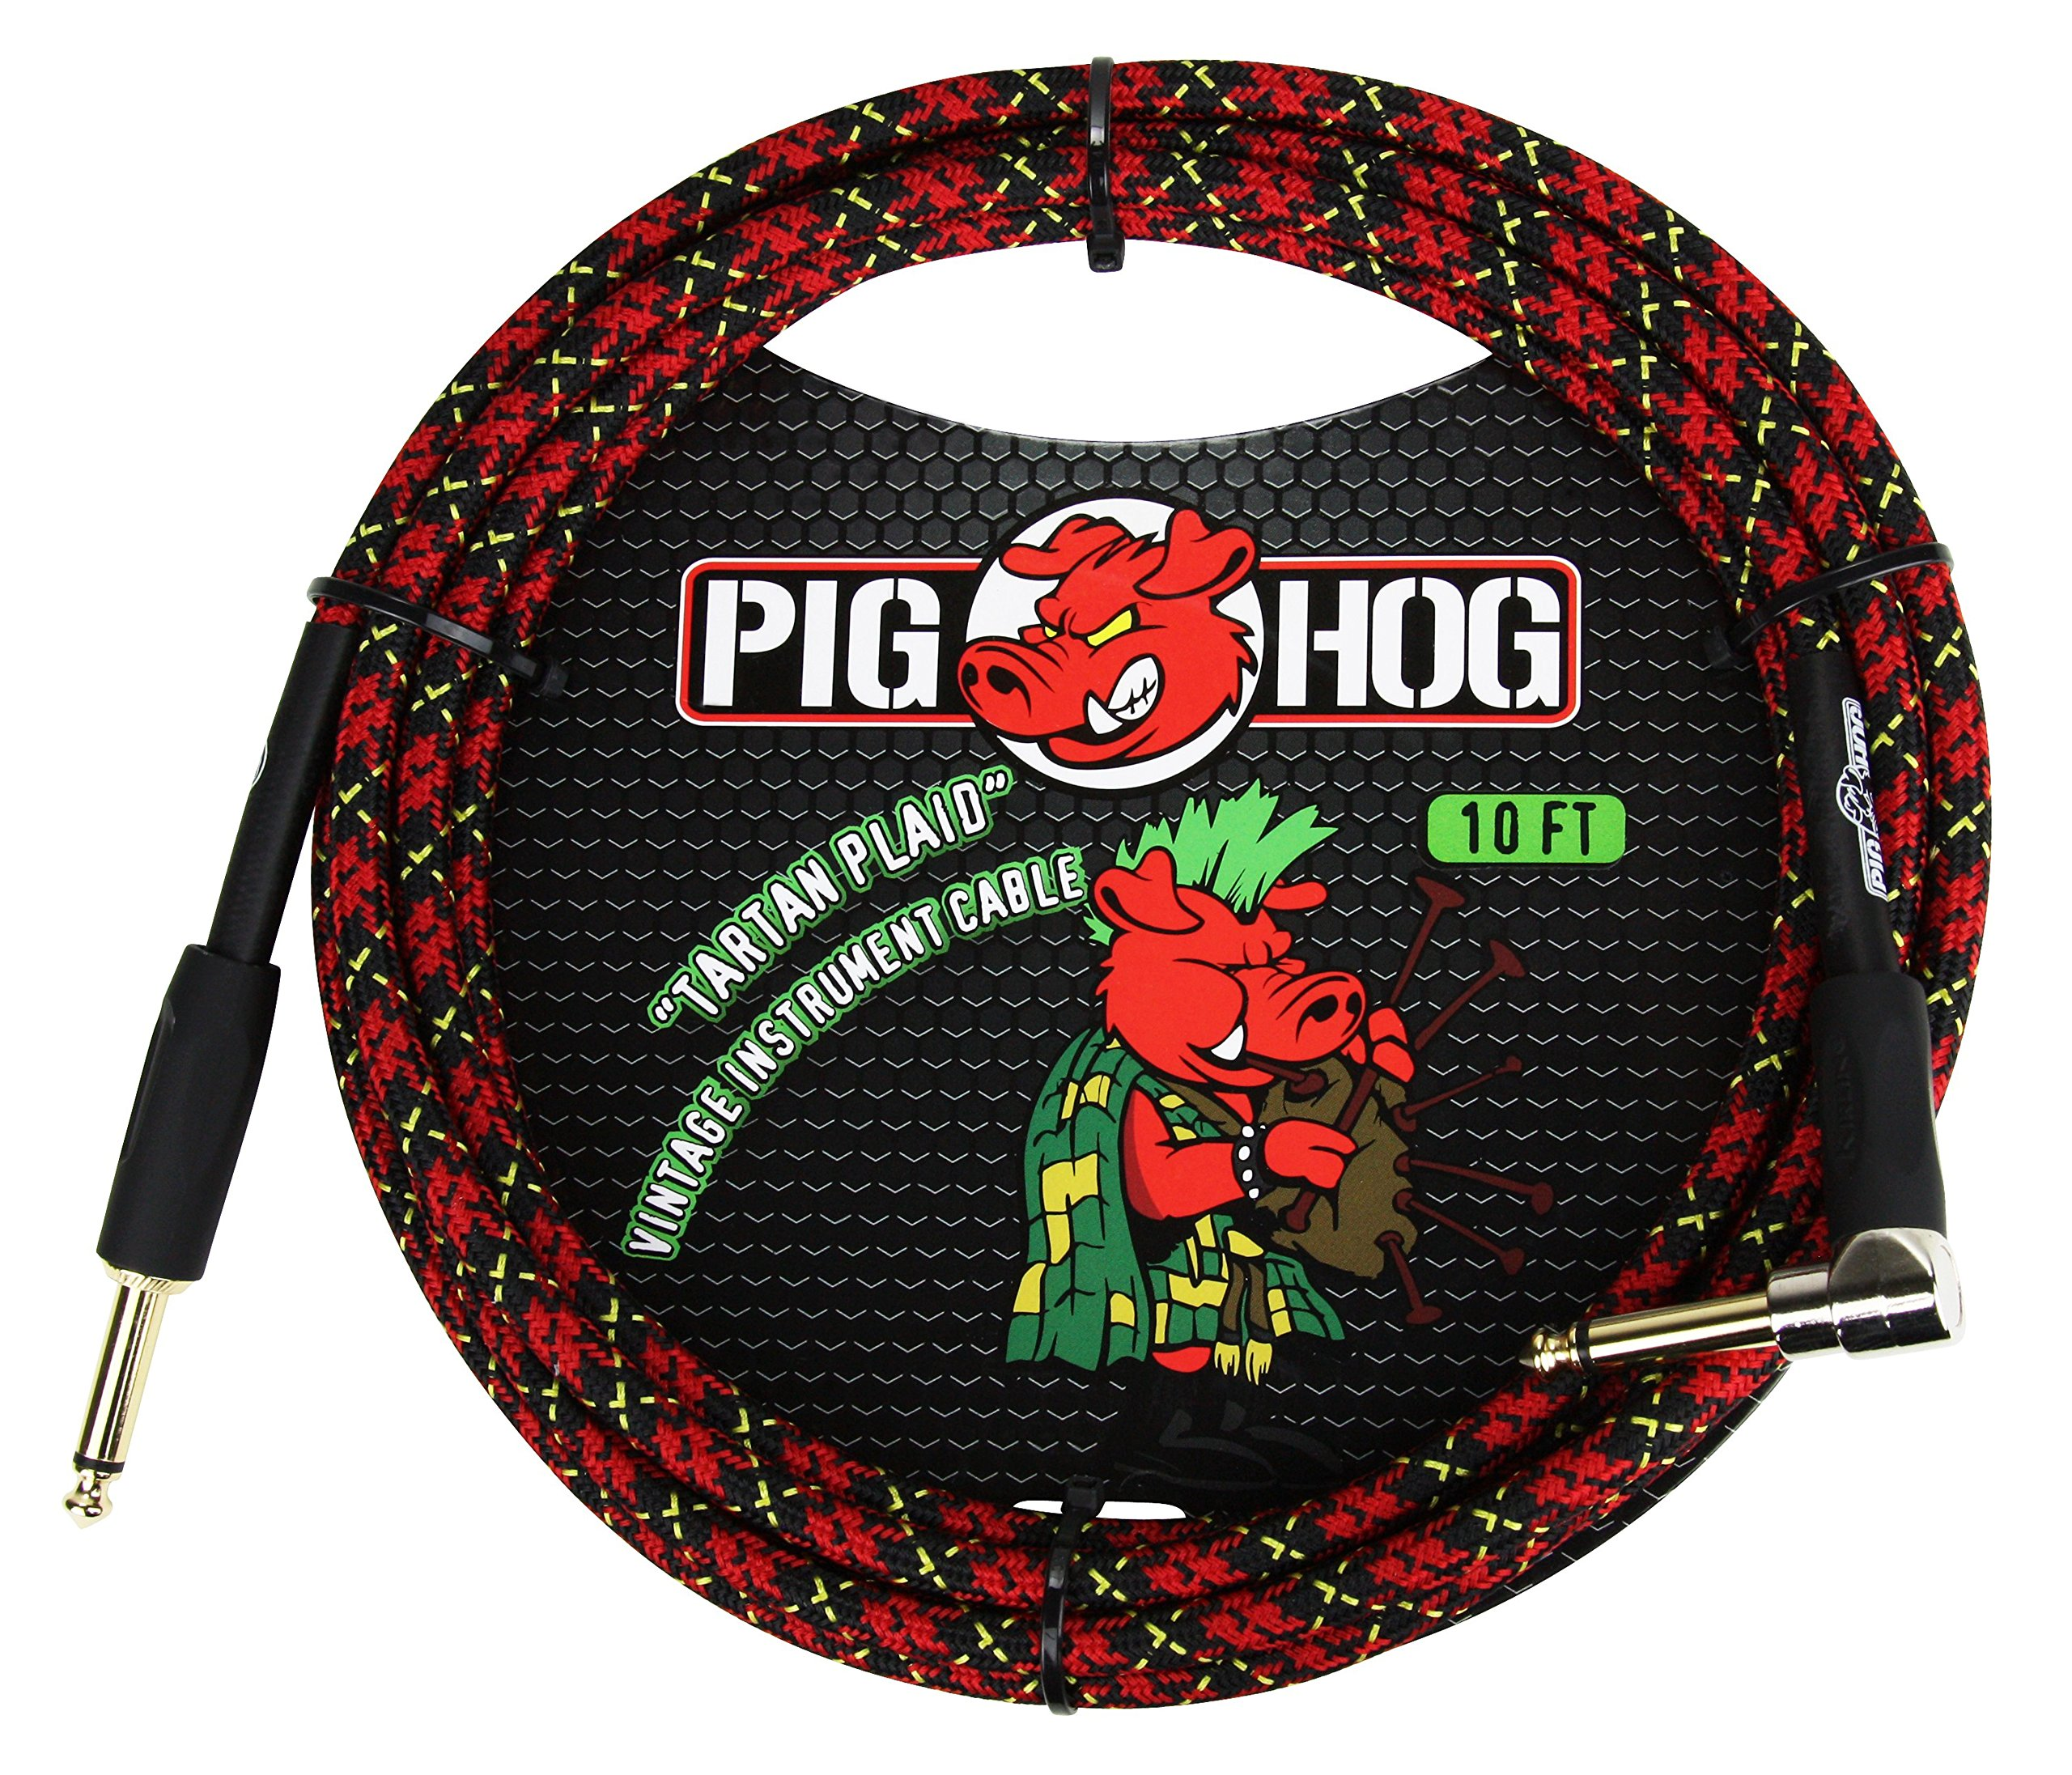 Pig Hog PCH10PLR 1/4'' to 1/4'' Right-Angle Tartain Plaid Guitar Instrument Cable, 10 Feet